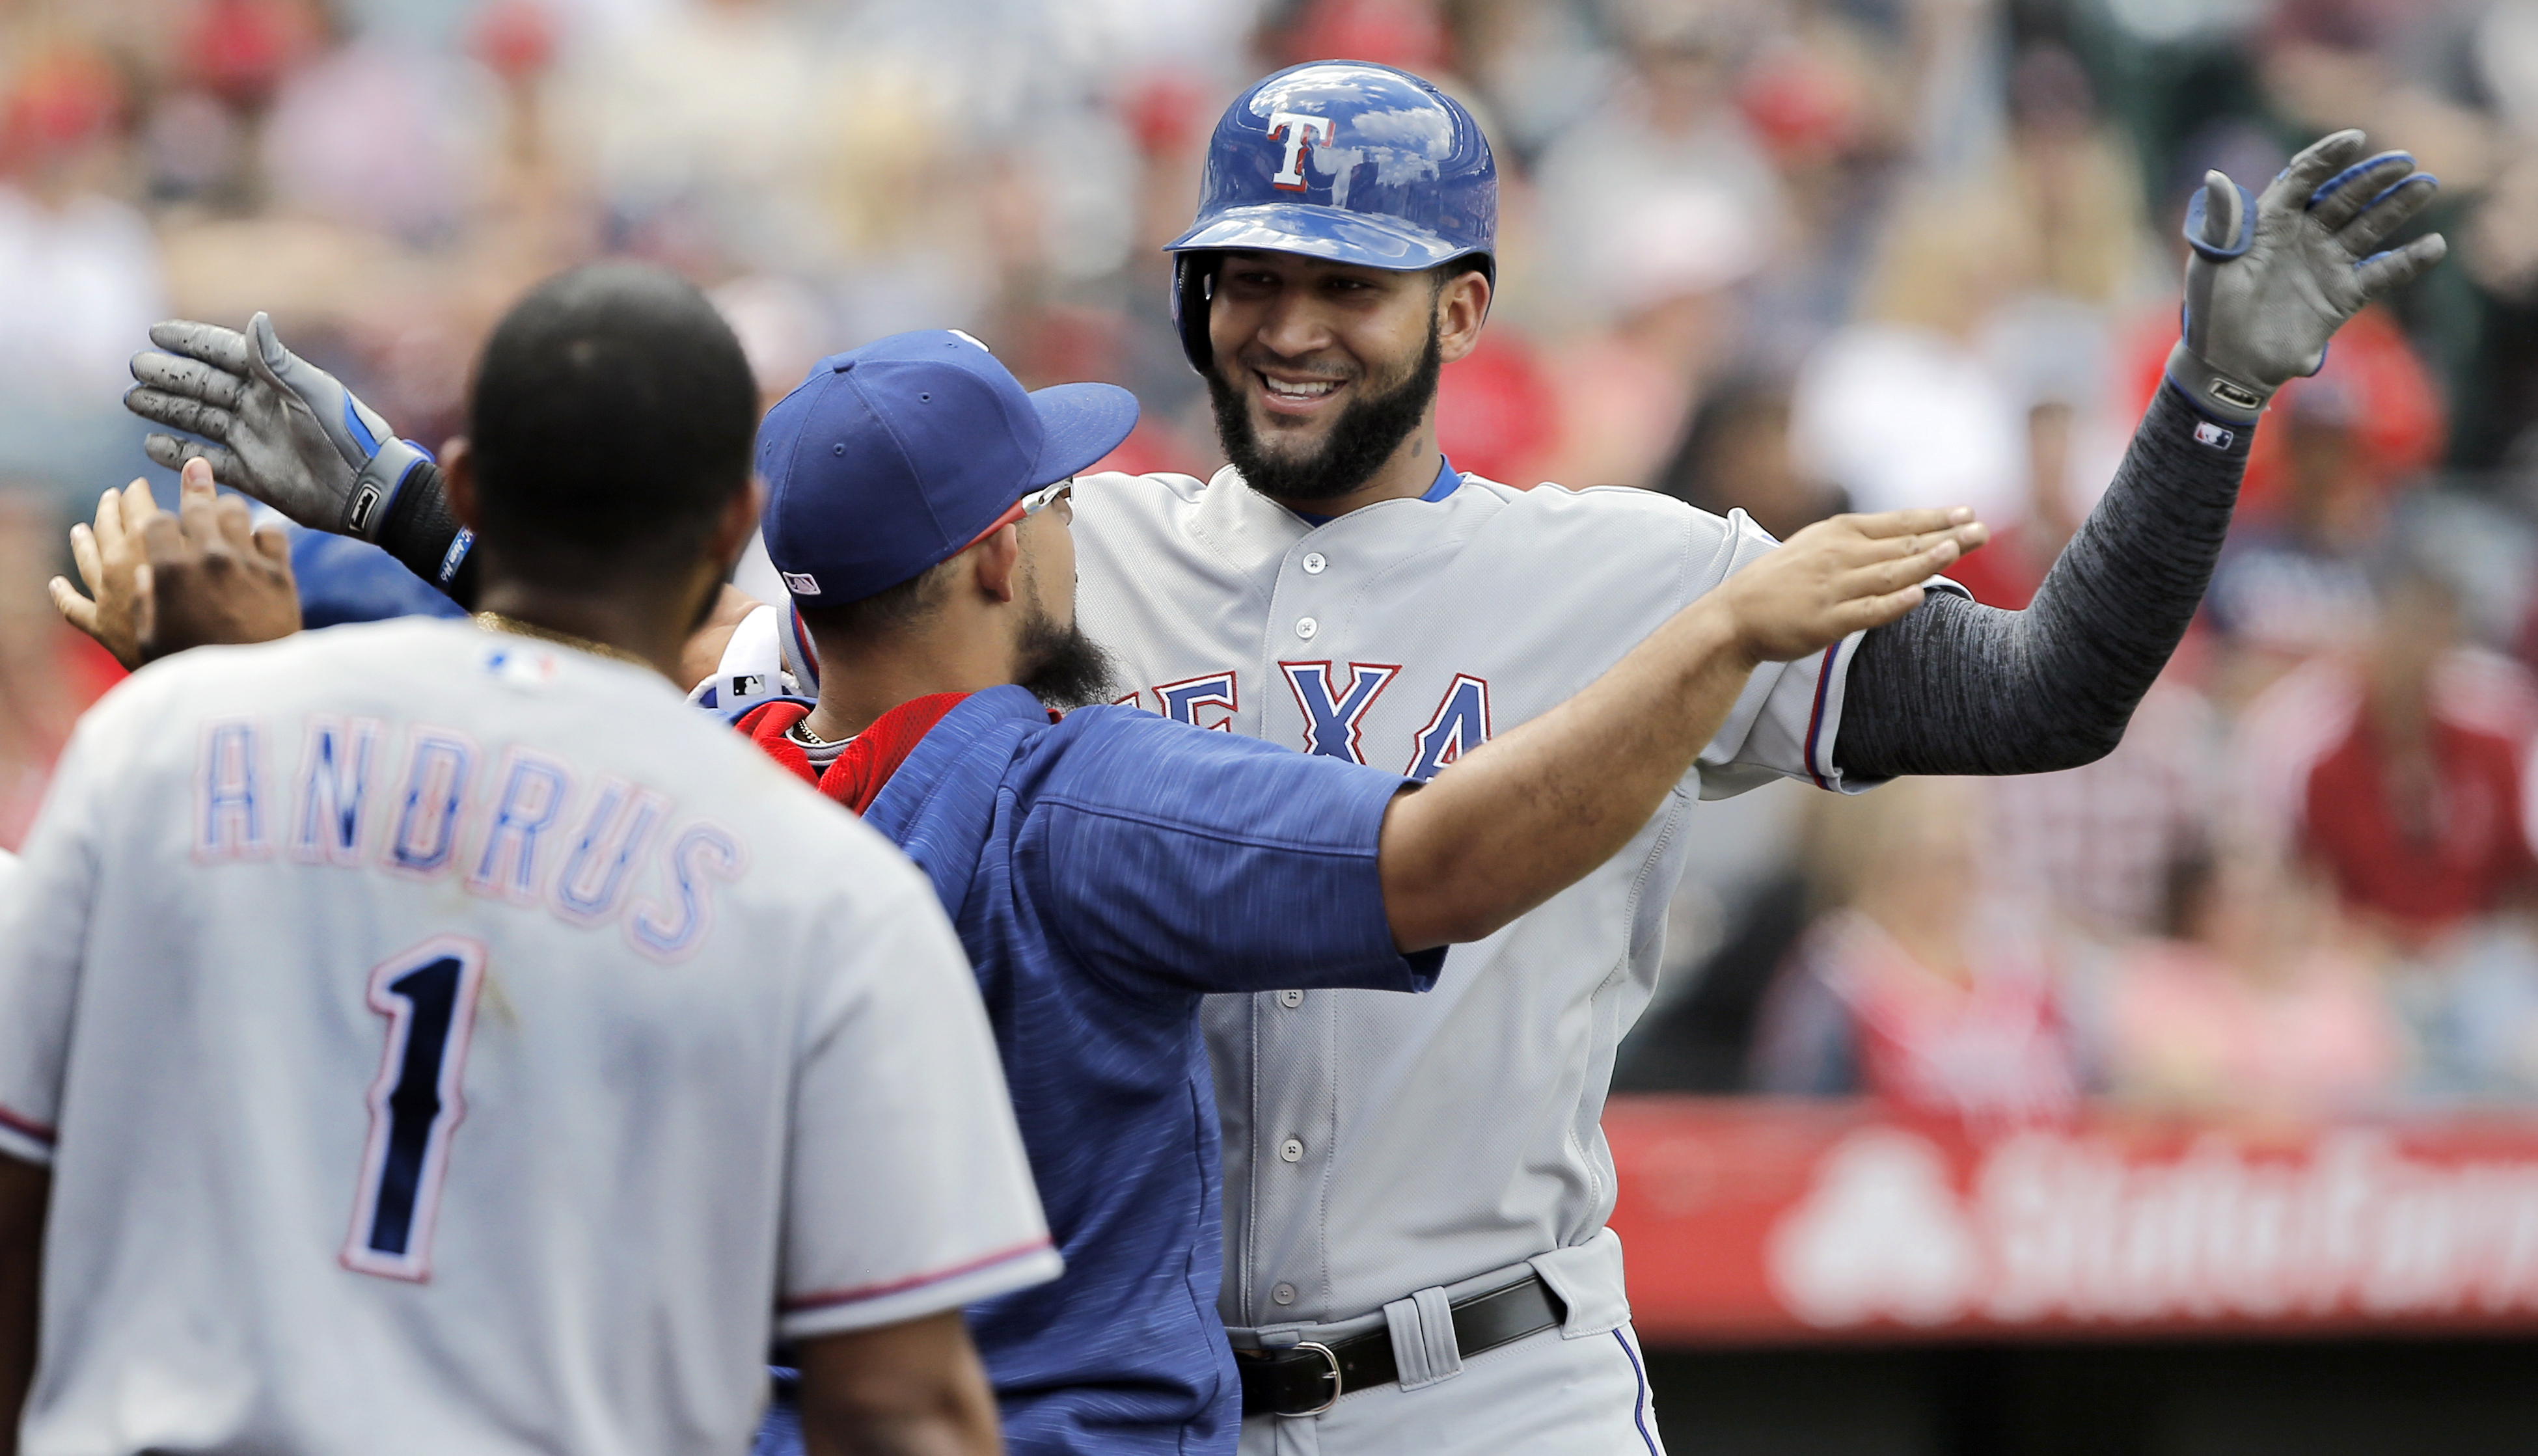 Texas Rangers' Nomar Mazara, right, gets congratulations from teammate Rougned Odor, center, after hitting a solo home run against the Los Angeles Angels during the fifth inning of a baseball game in Anaheim, Calif., Sunday, April 10, 2016. (AP Photo/Alex